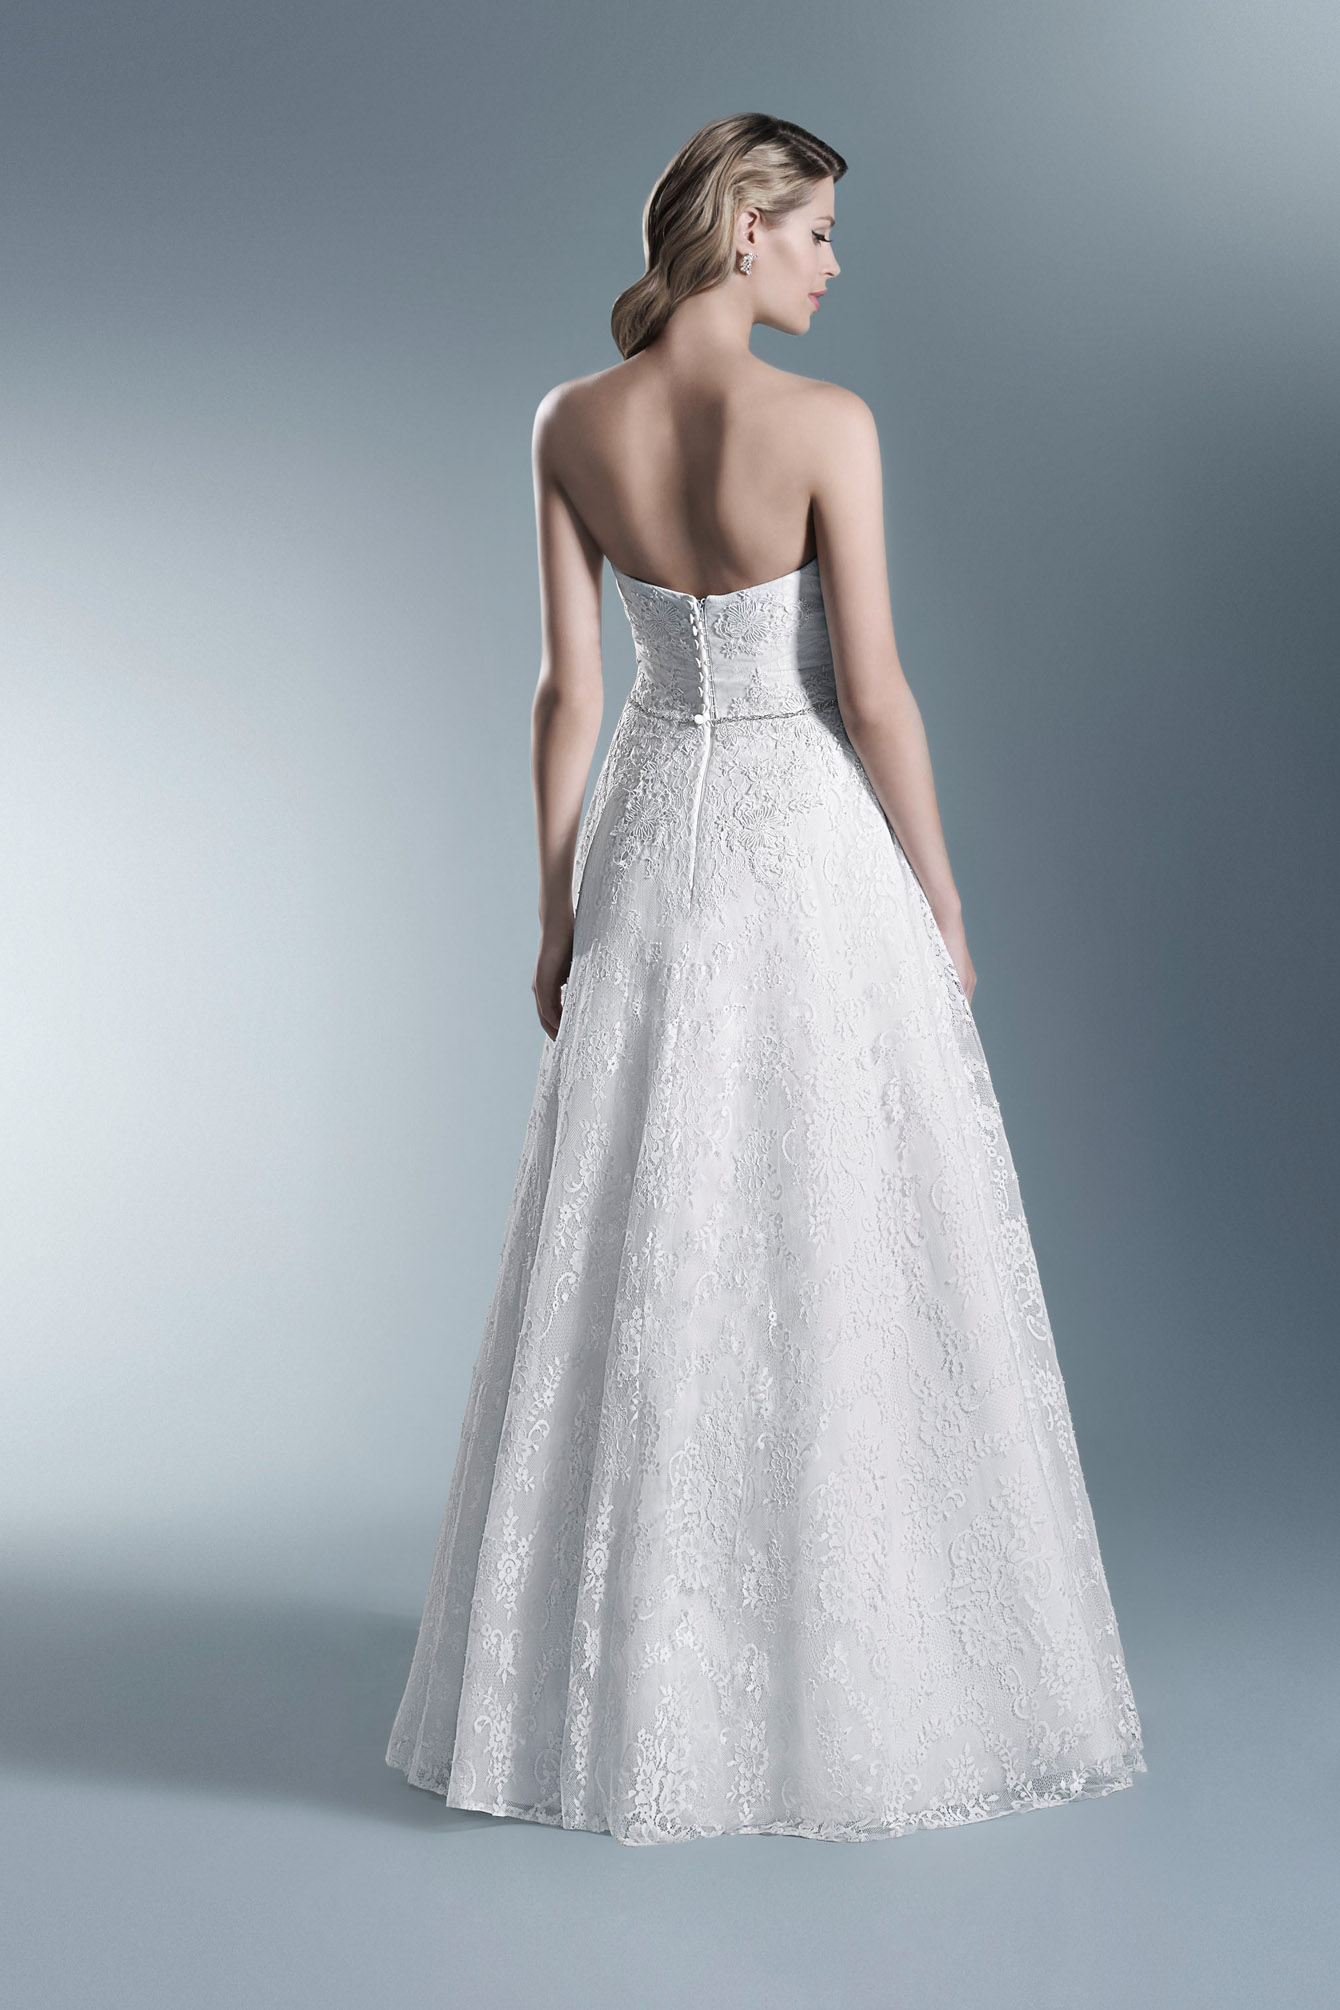 TO-621 - The One 2017 - Wedding dresses - Agnes - lace wedding ...